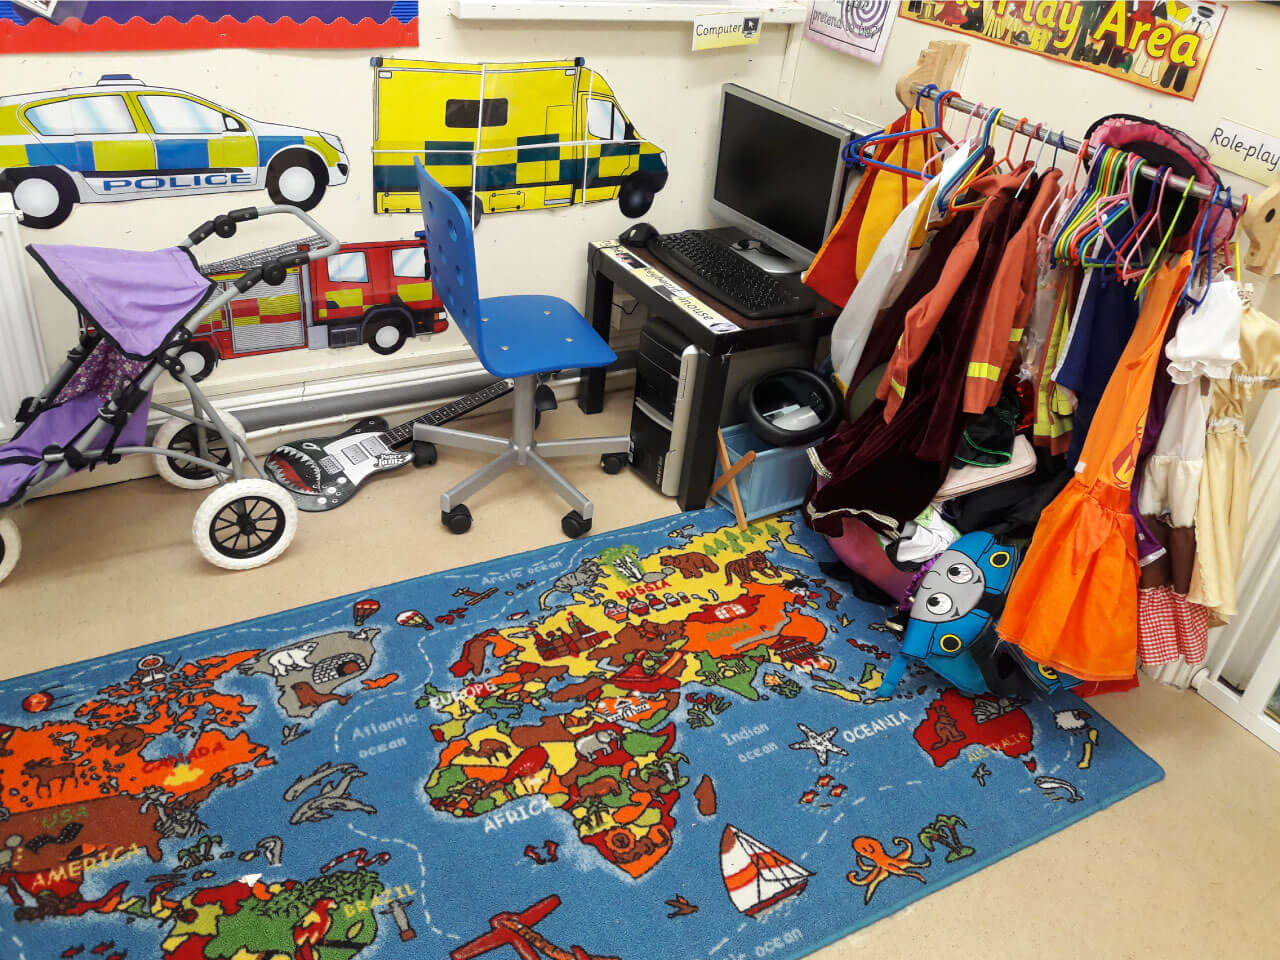 Role play area full of clothes from all over the world